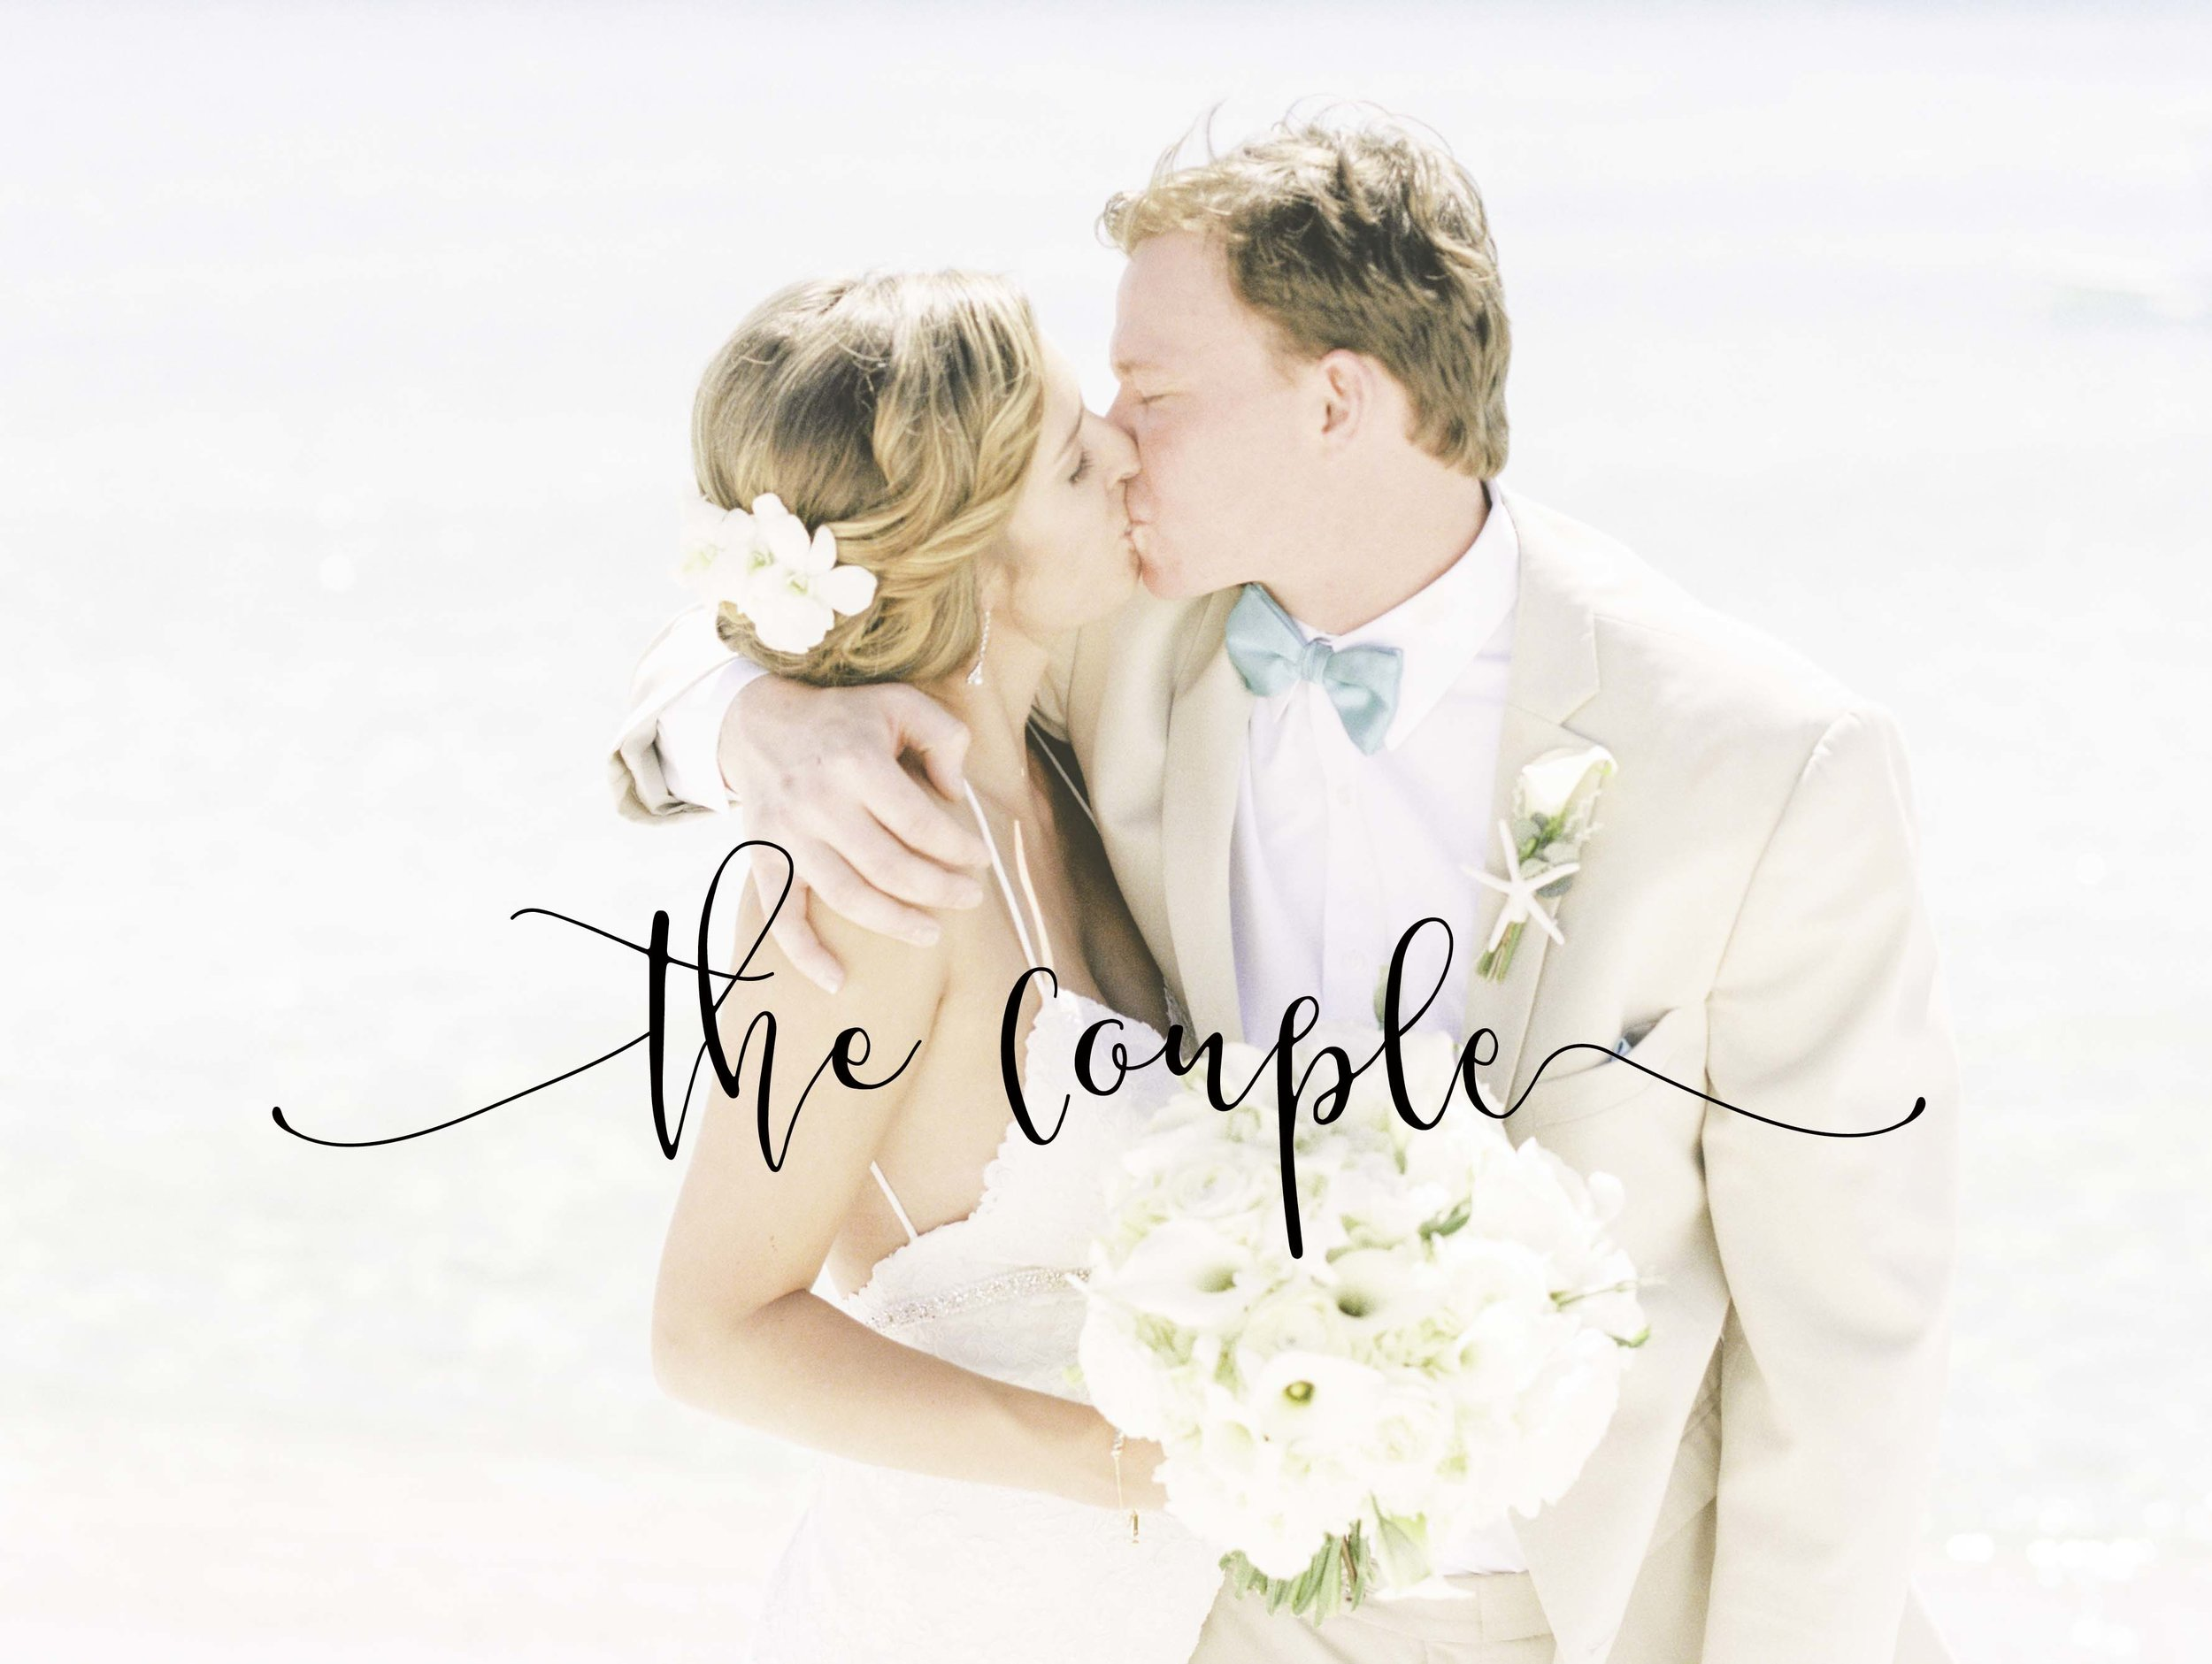 The Couple Cover Image.jpg